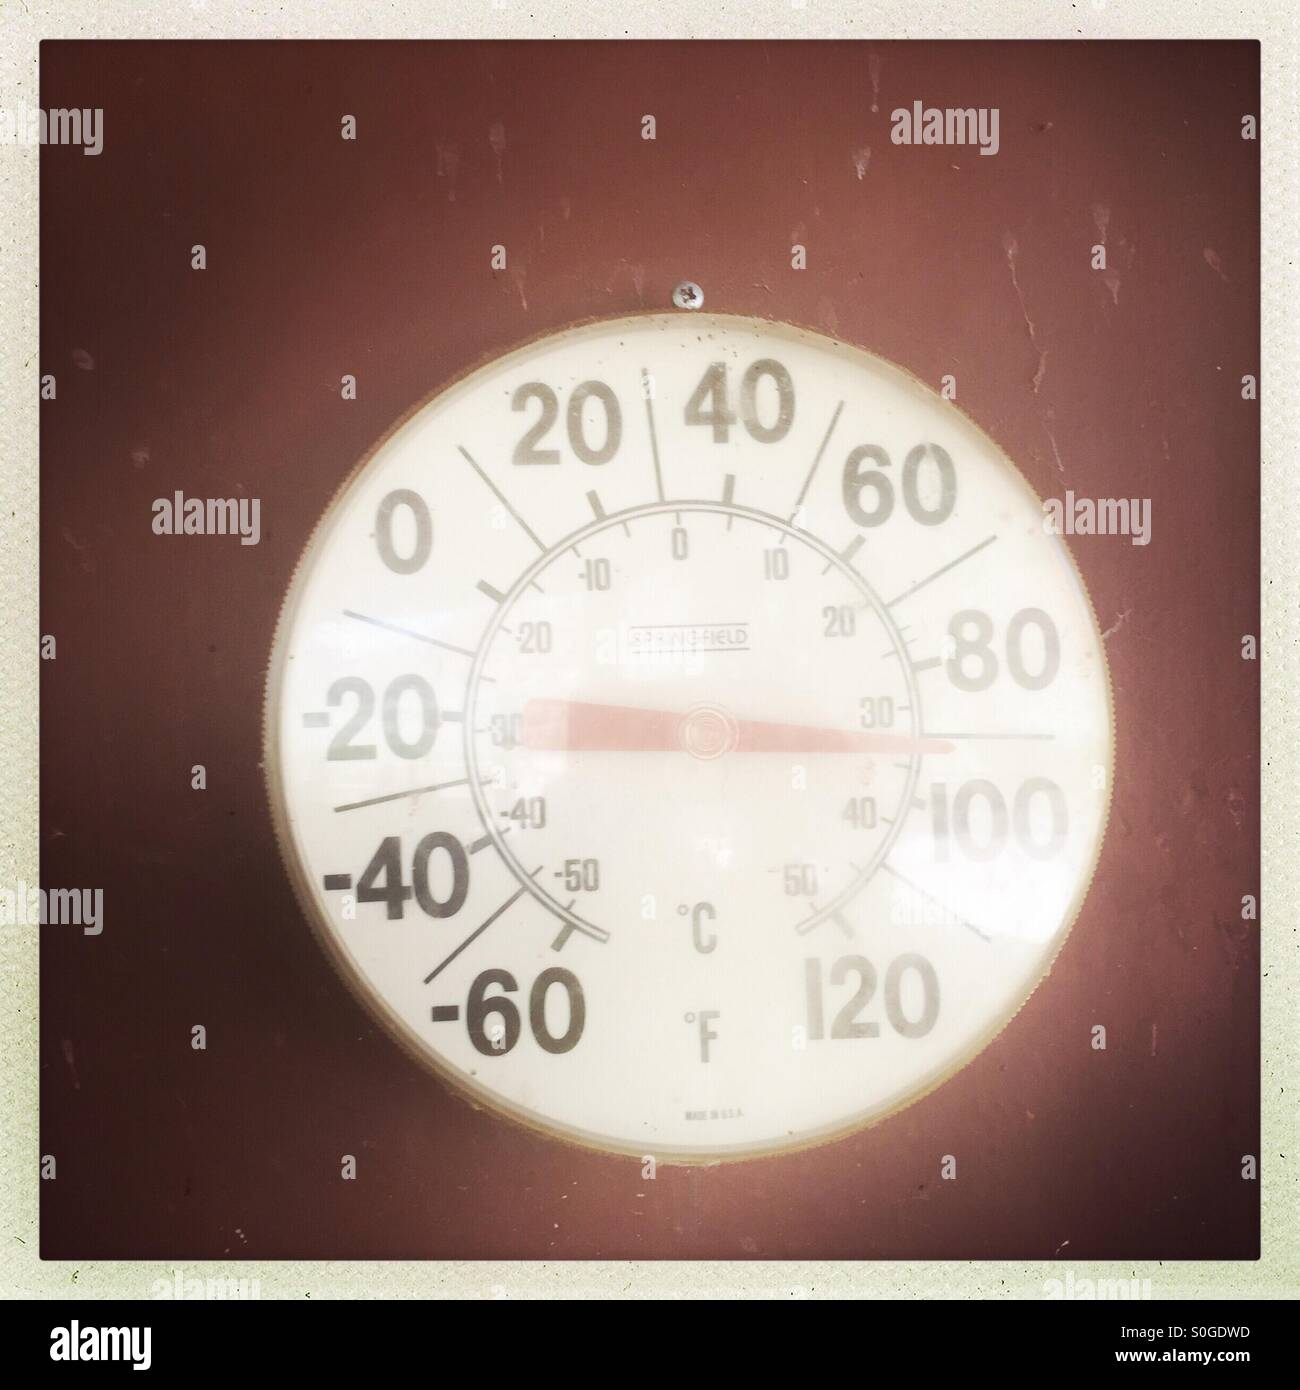 A temperature gage. - Stock Image